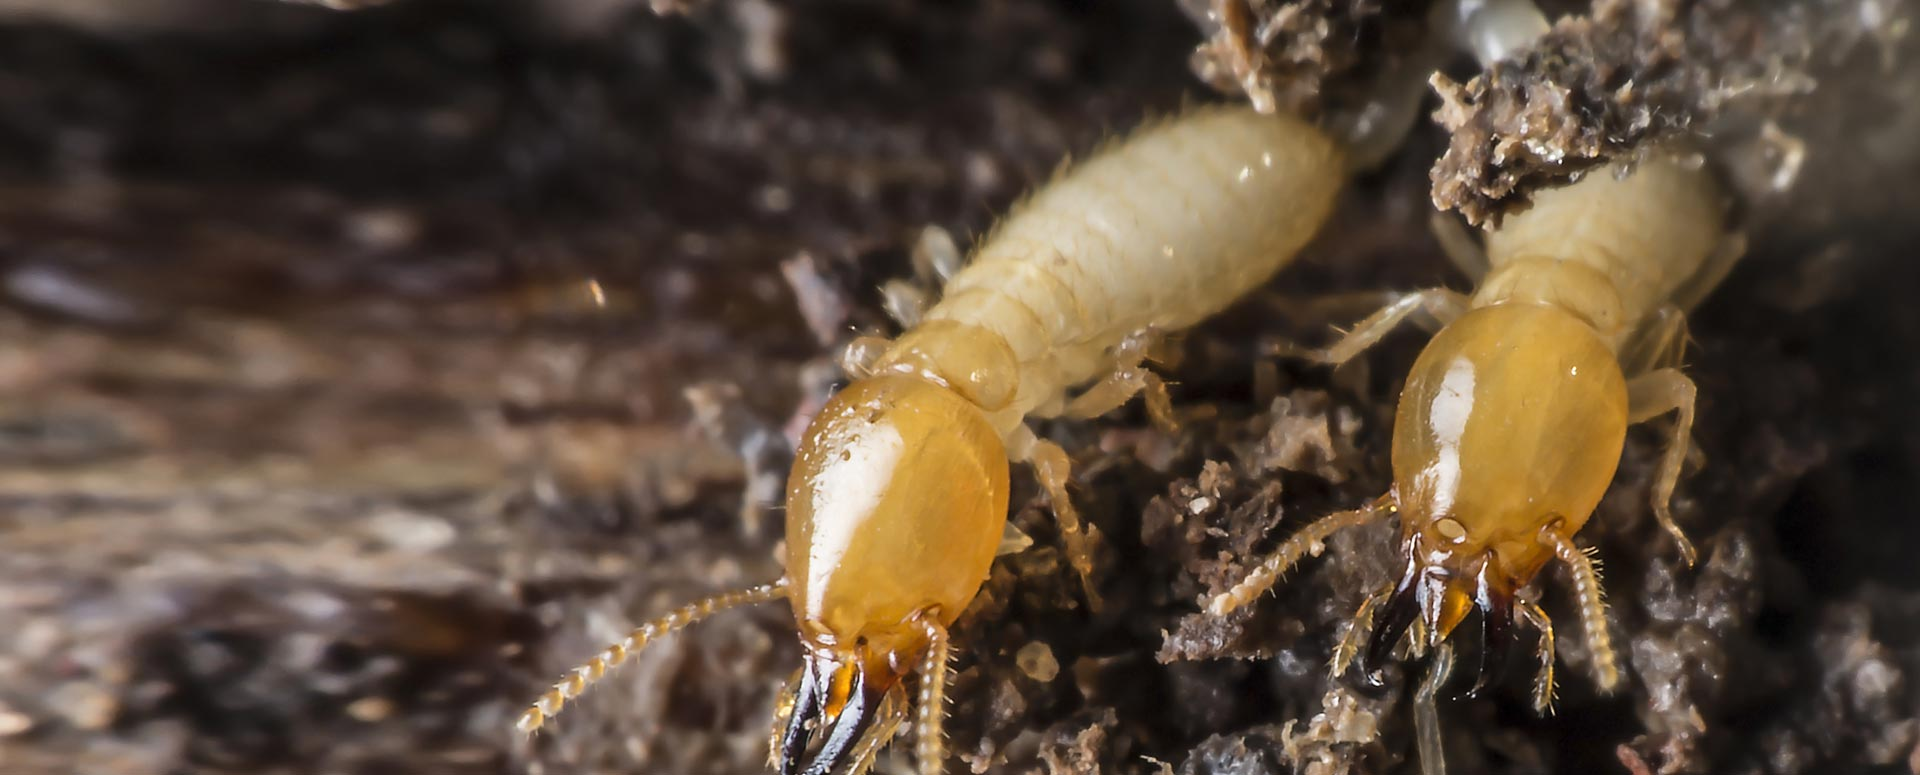 Prohealth Pest Control Eliminate Termites